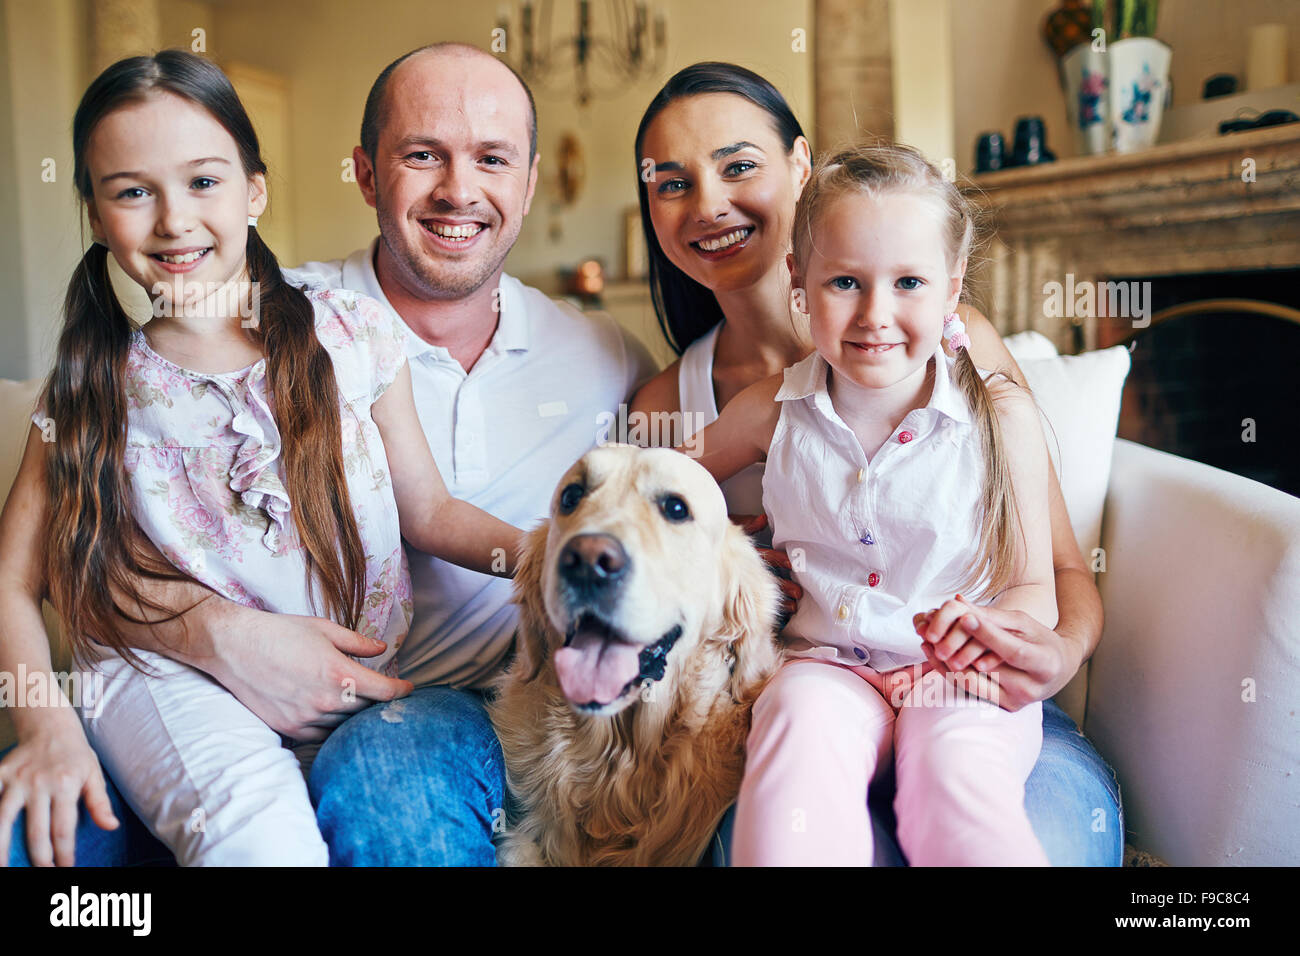 Portrait of happy family with dog - Stock Image